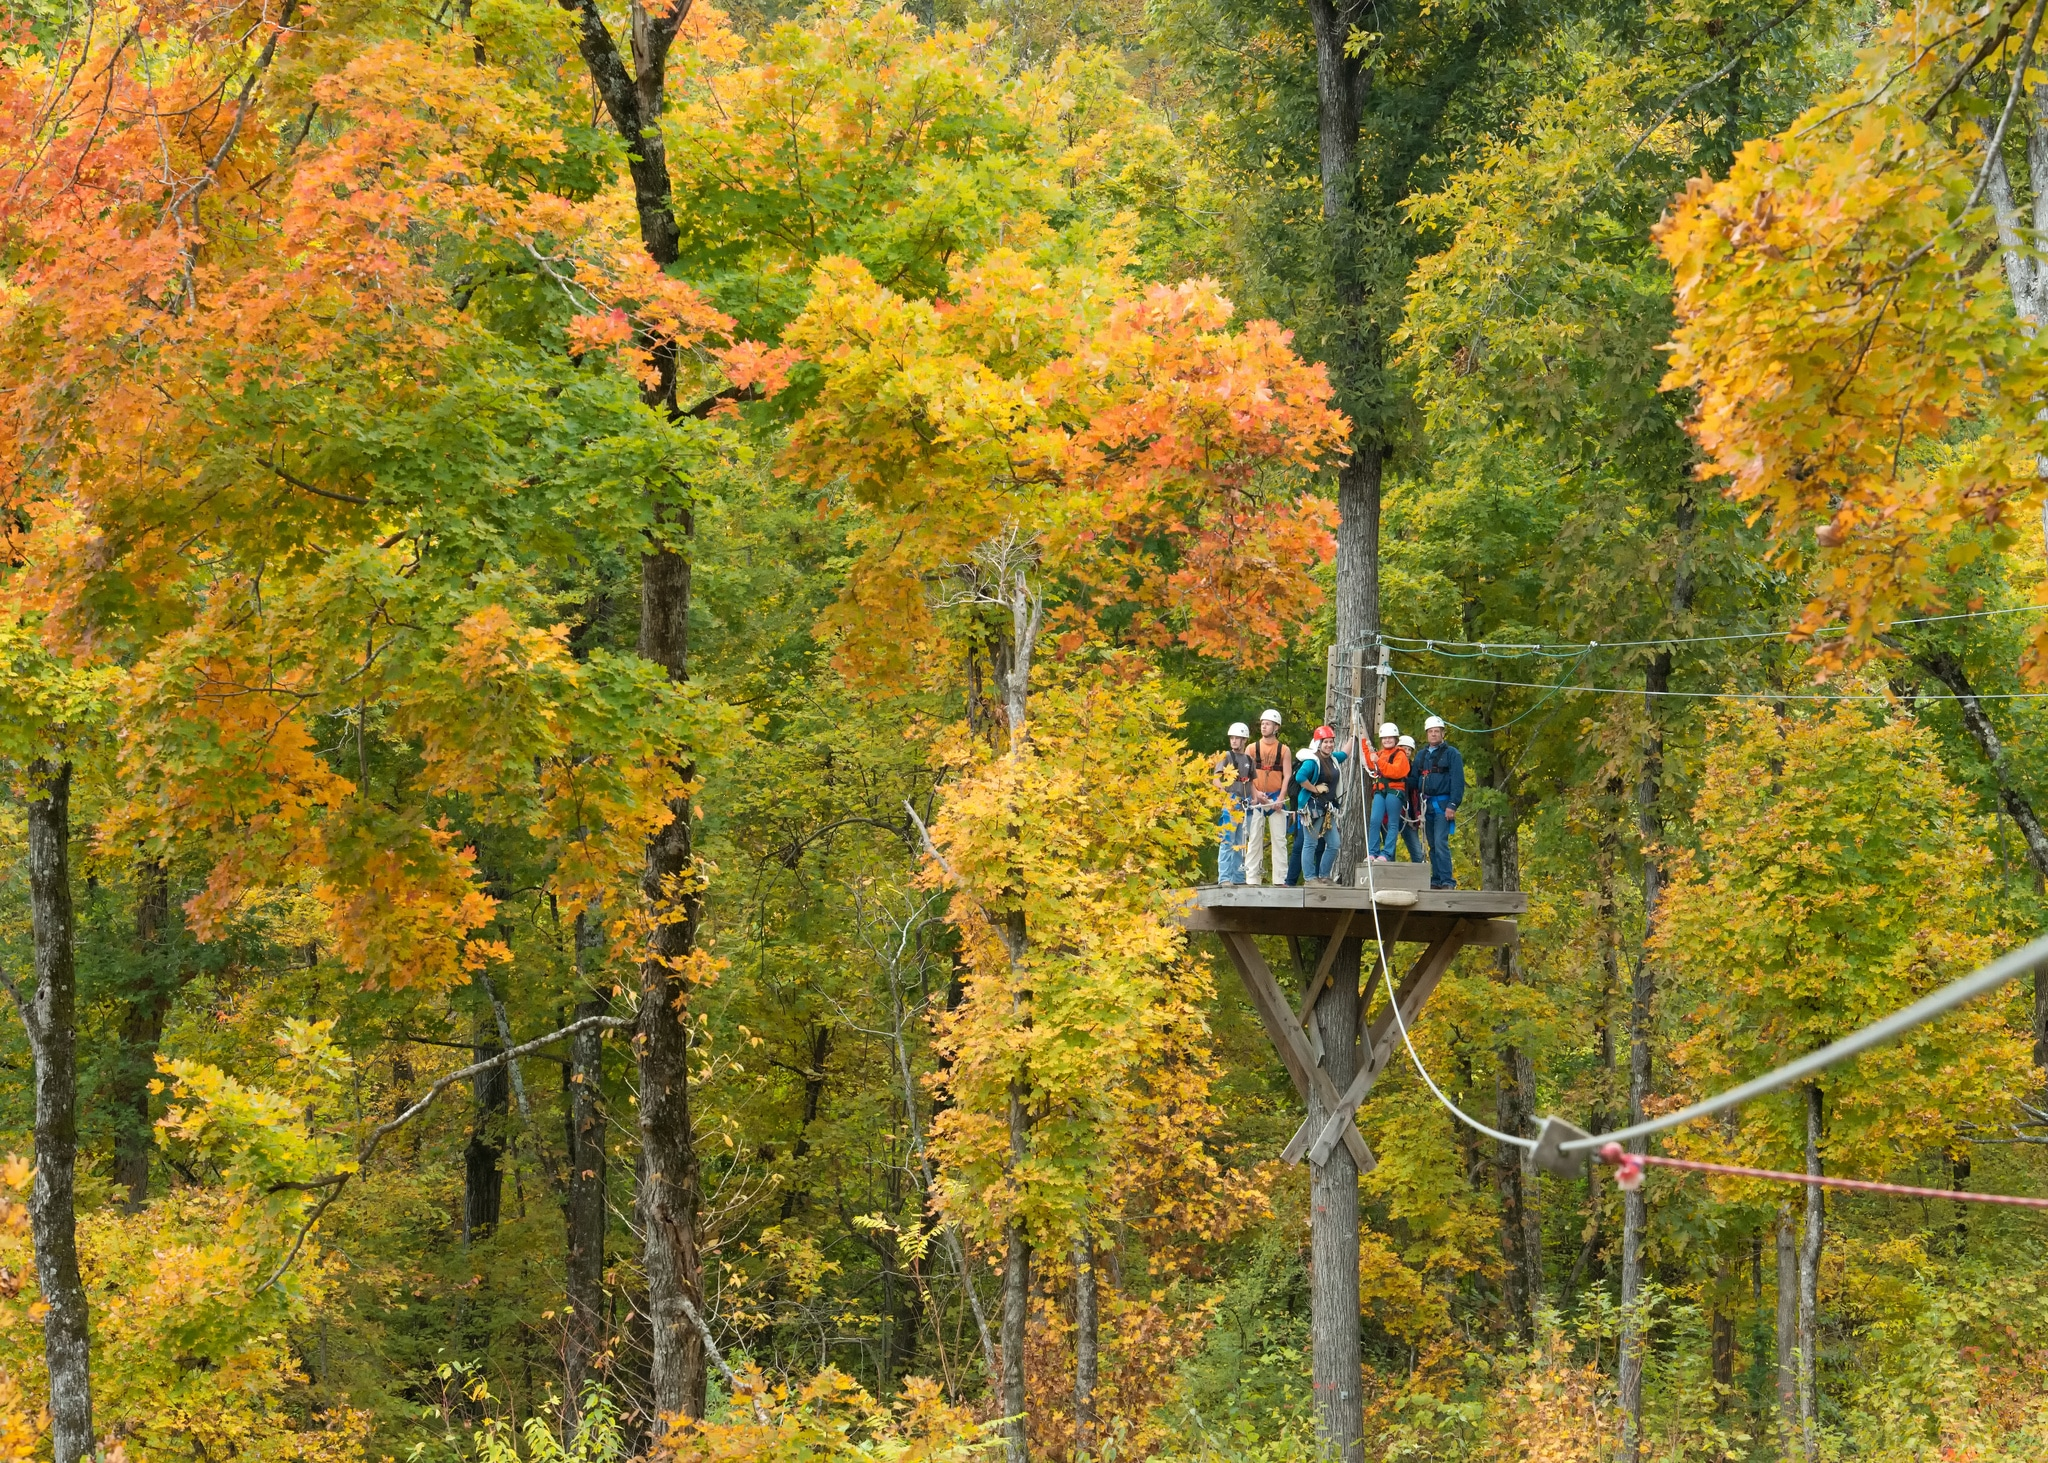 A group of young people preparing to zip line over Buffalo River wilderness